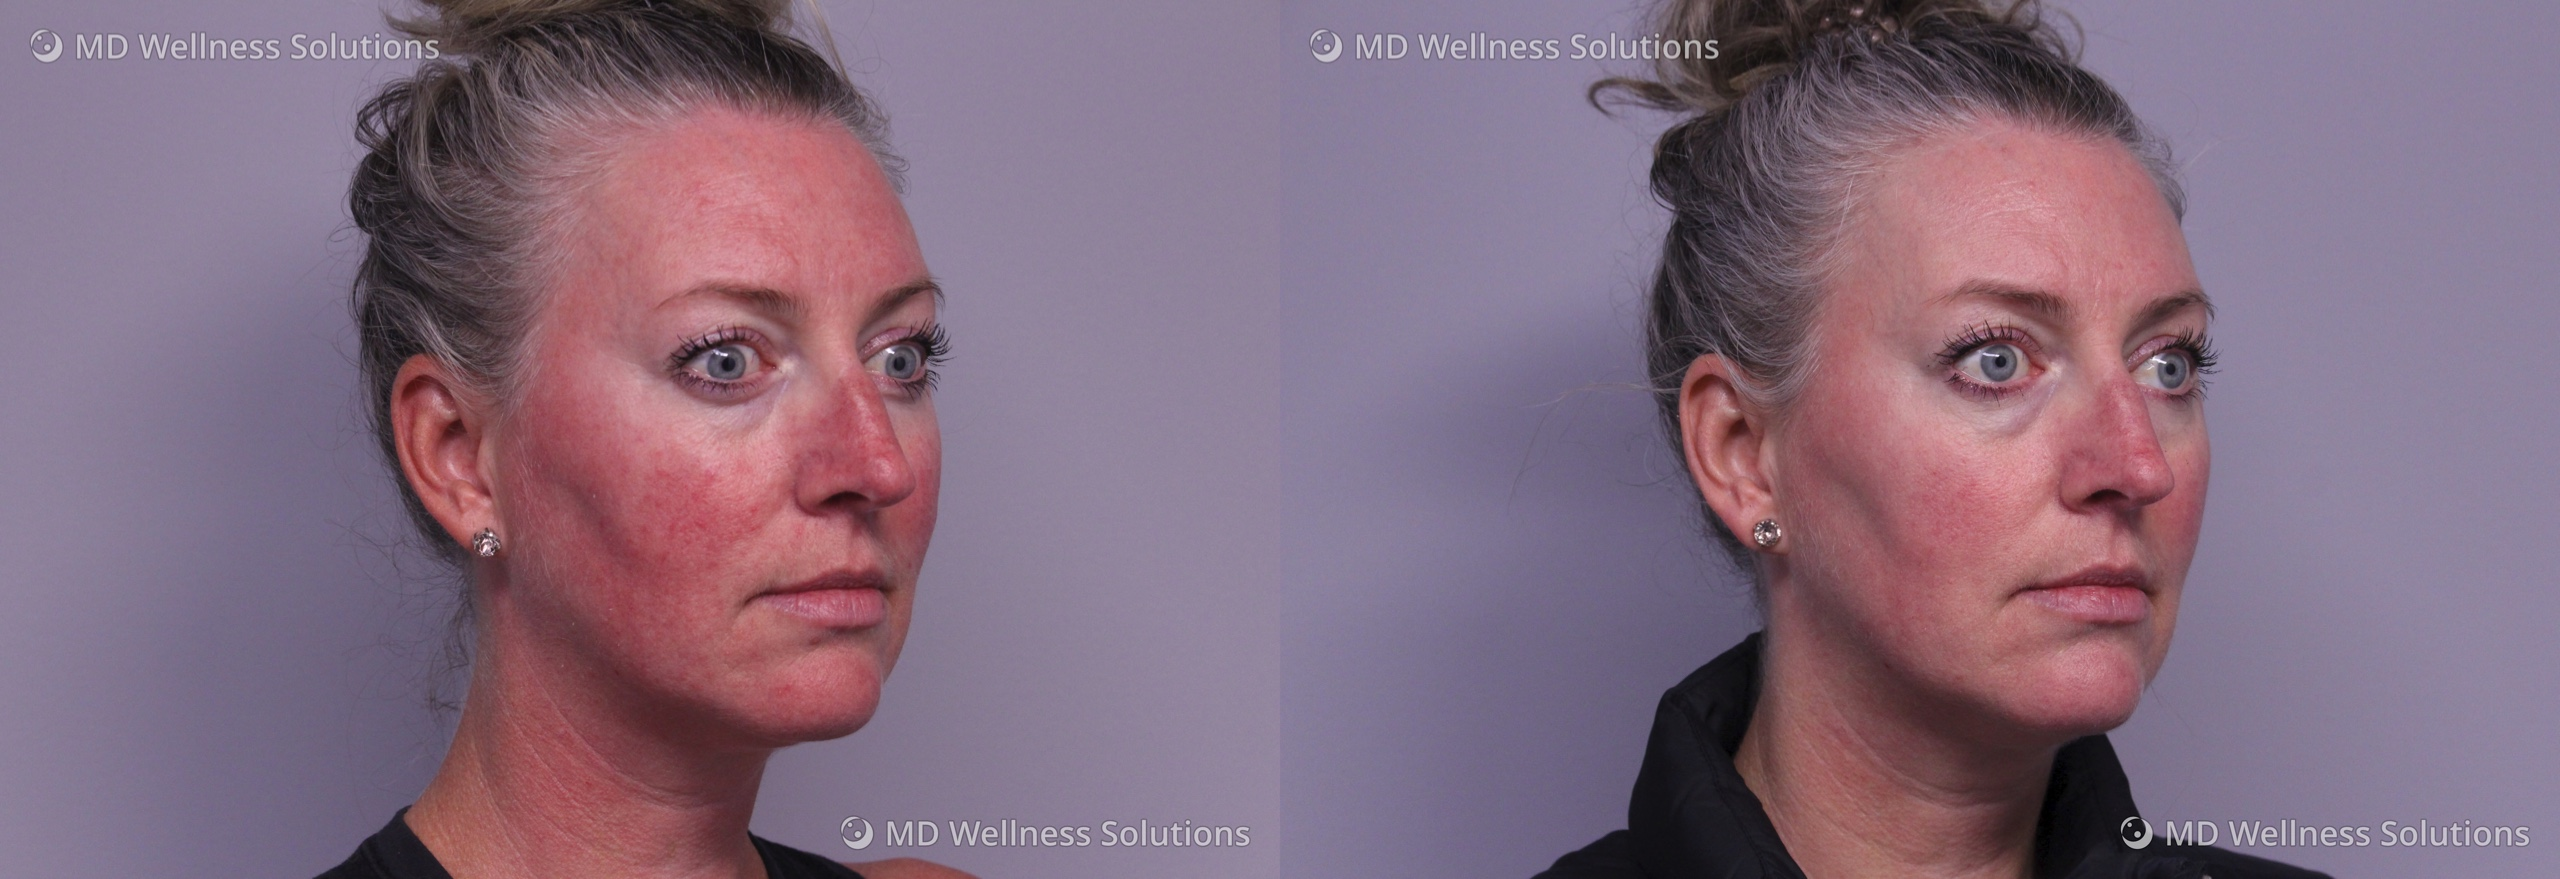 35-44 year old woman before and after rosacea treatment